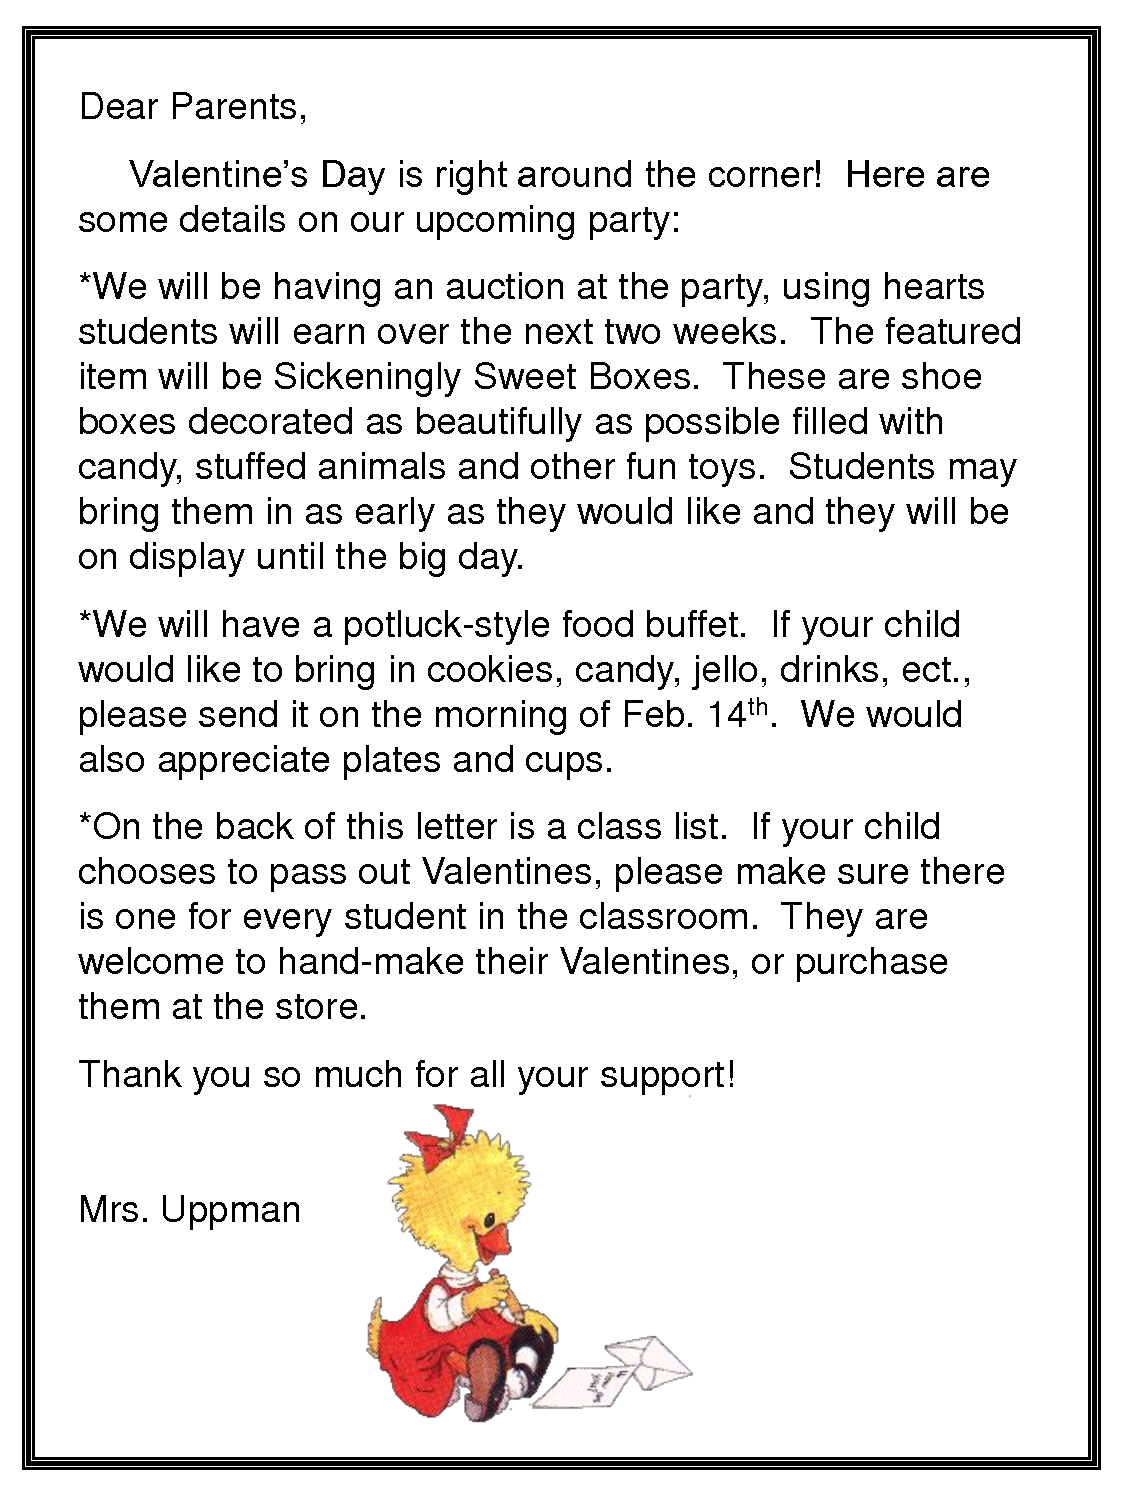 Holiday Party Letter to Parents  February Valentine 27s Day Party